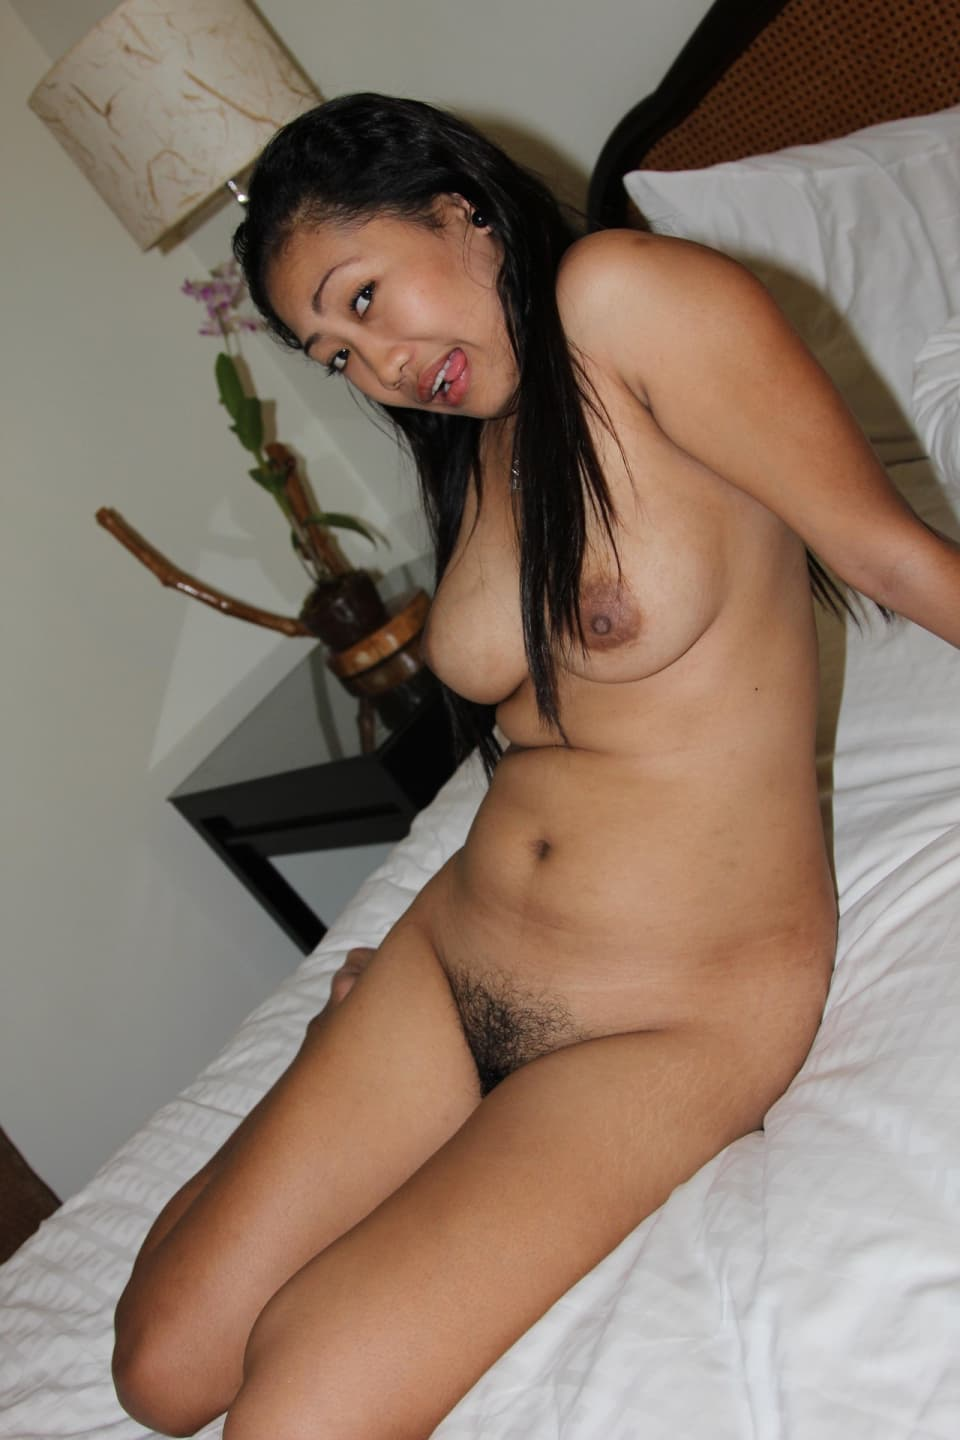 bbw porn asian girls